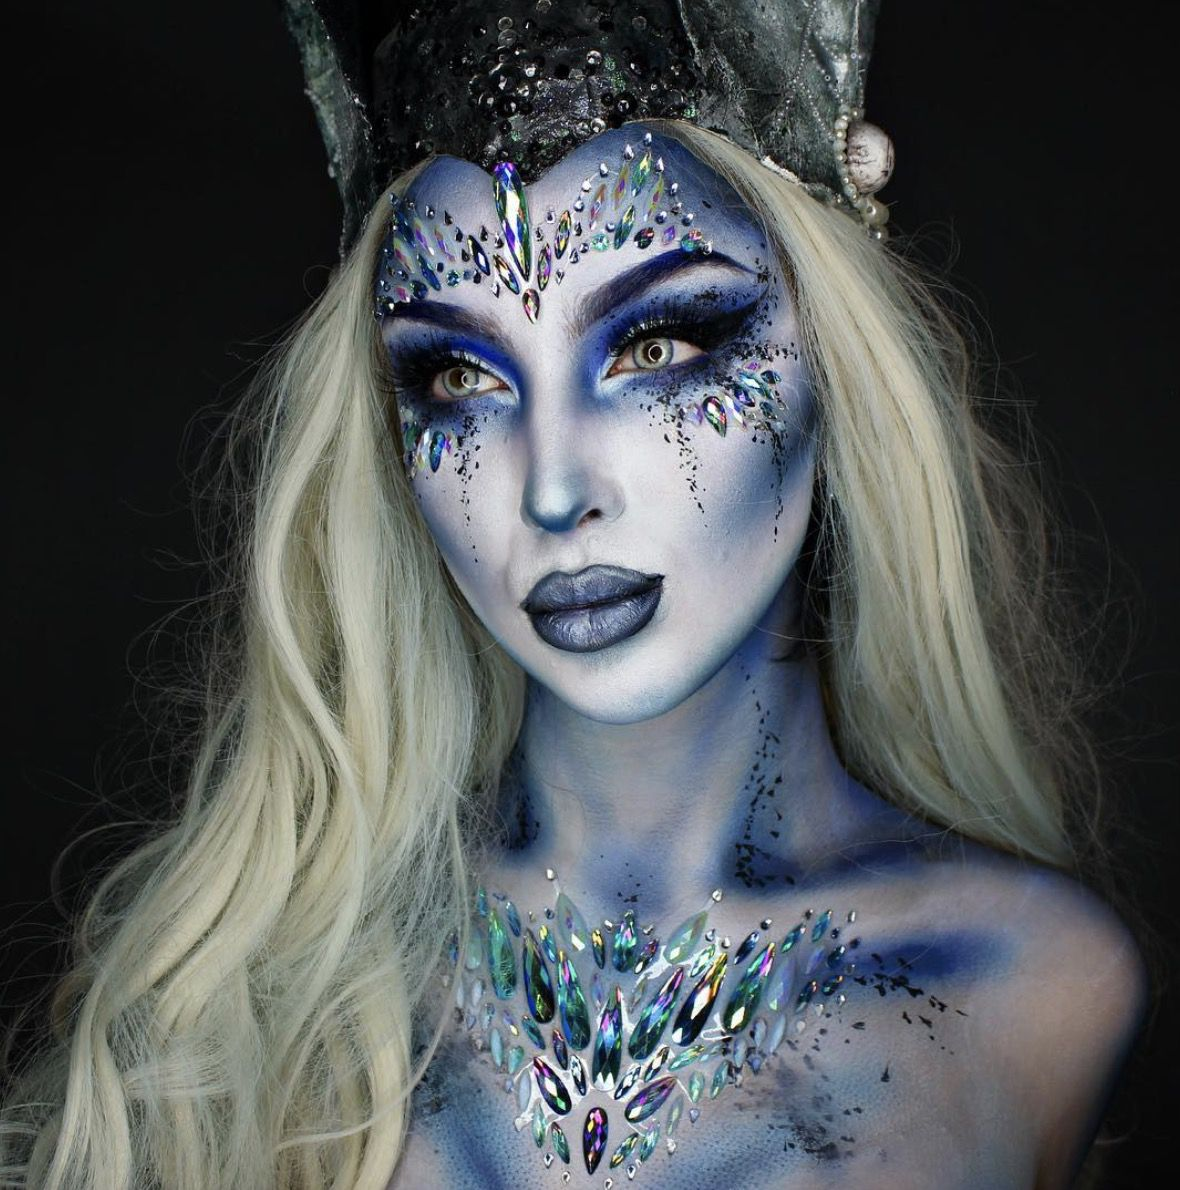 41 Most Jaw-Dropping Halloween Makeup Ideas That Are Still Pretty: Ice Queen Makeup - Click though to see more awe inspiring pretty Halloween makeup looks, gorgeous Halloween makeup and Halloween costumes. #halloweenmakeup #halloweenmakeuppretty #halloweencostumes #halloweenmakeupinspo #icequeenmakeup